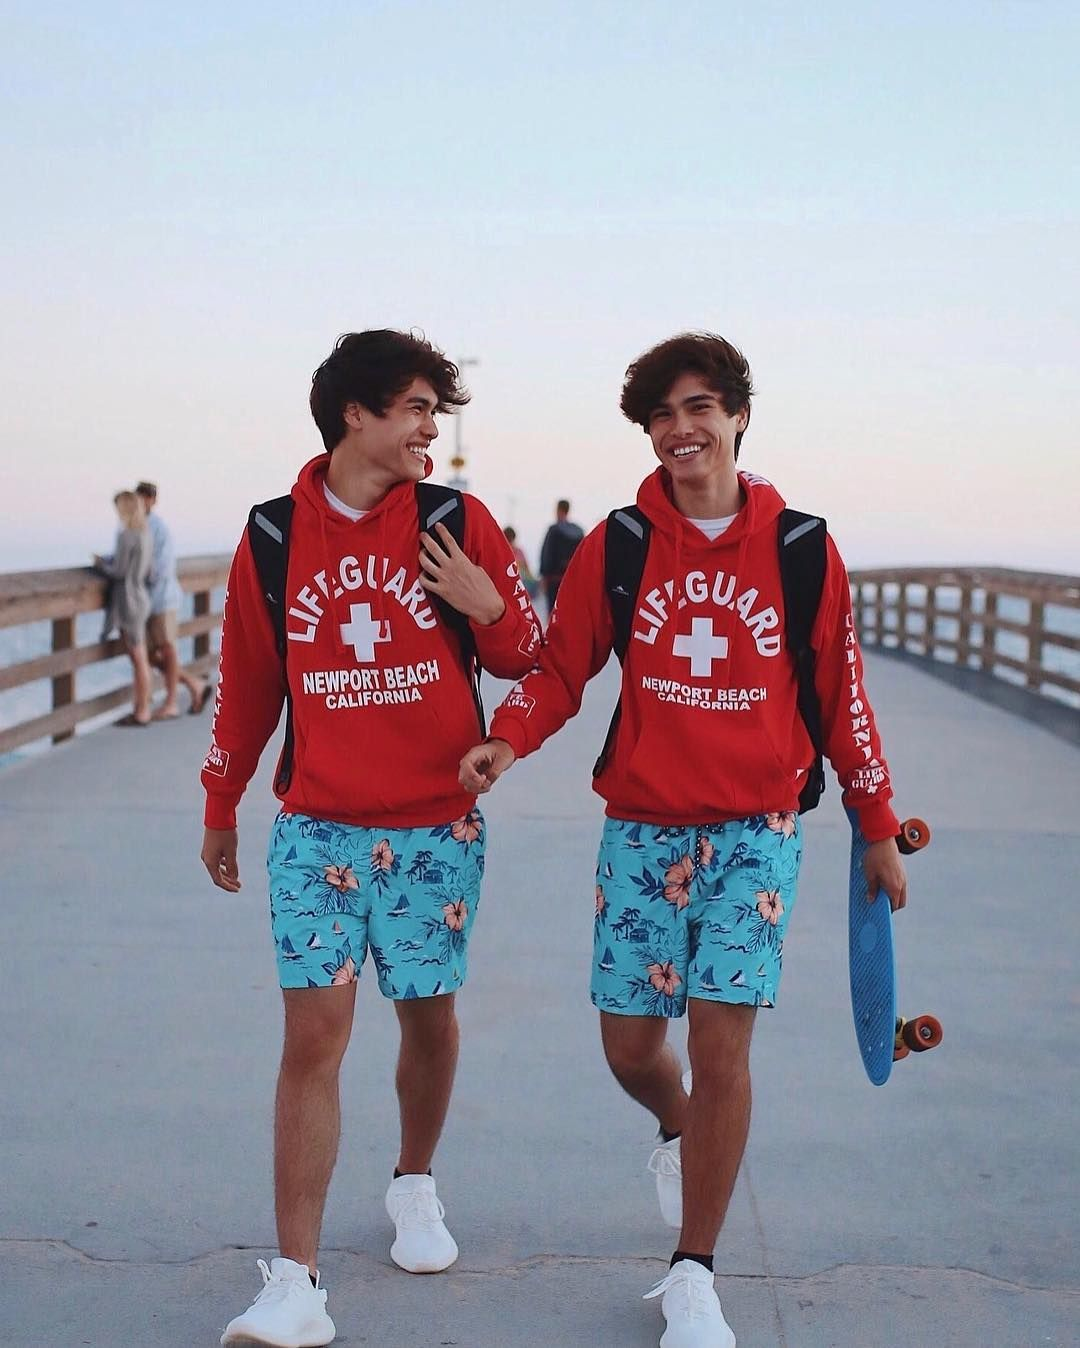 311 7k Likes 3 345 Comments Froy On Instagram Soccer Players Or Boy Band Members The World Will Never Kno Boy Celebrities Celebrity Twins Beautiful Boys